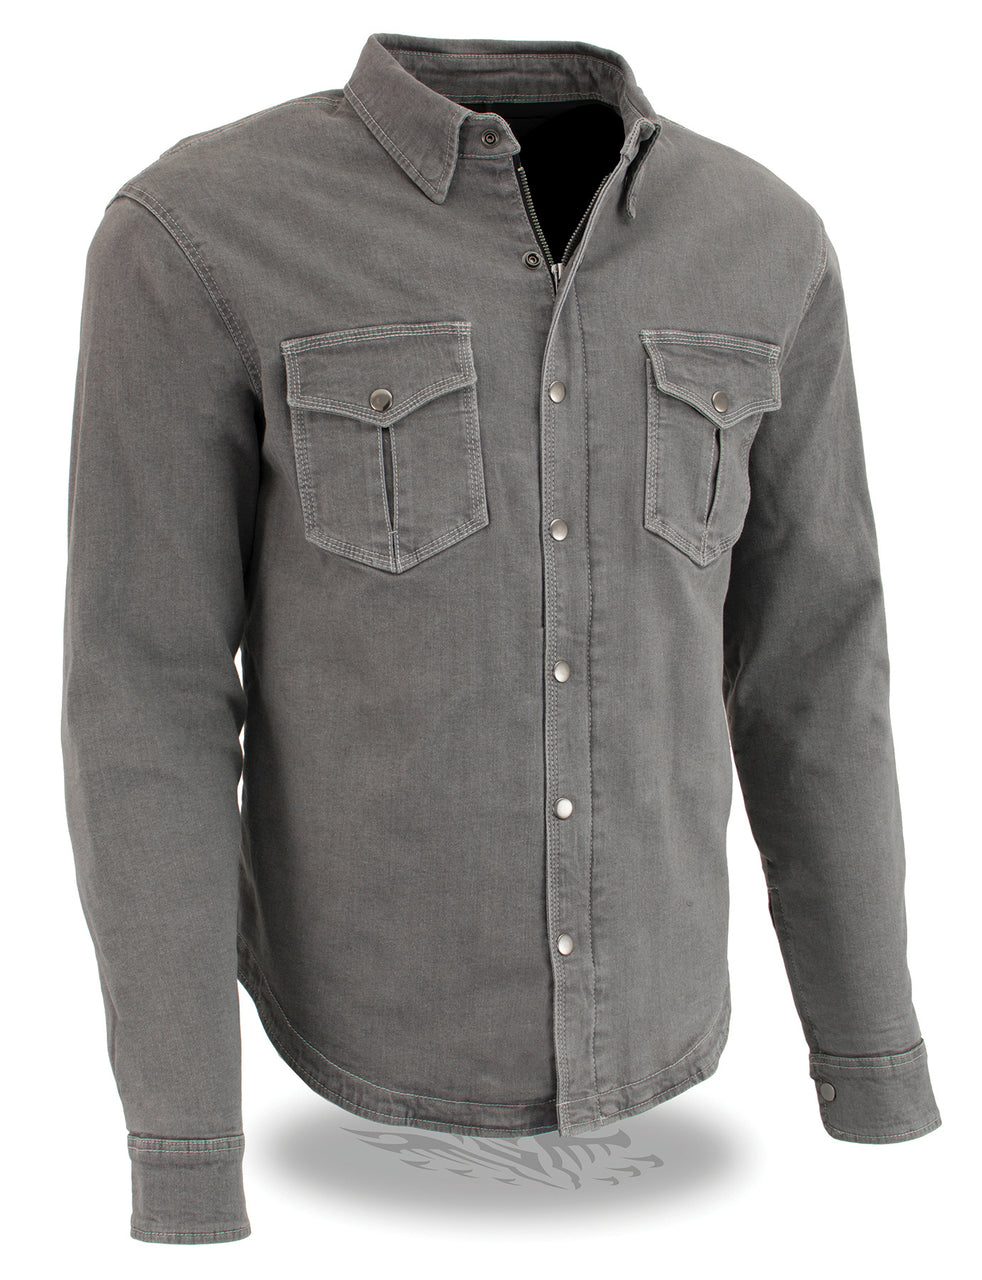 Men's Armored Denim Biker Shirt w/ Aramid® by DuPont™ Fibers - HighwayLeather